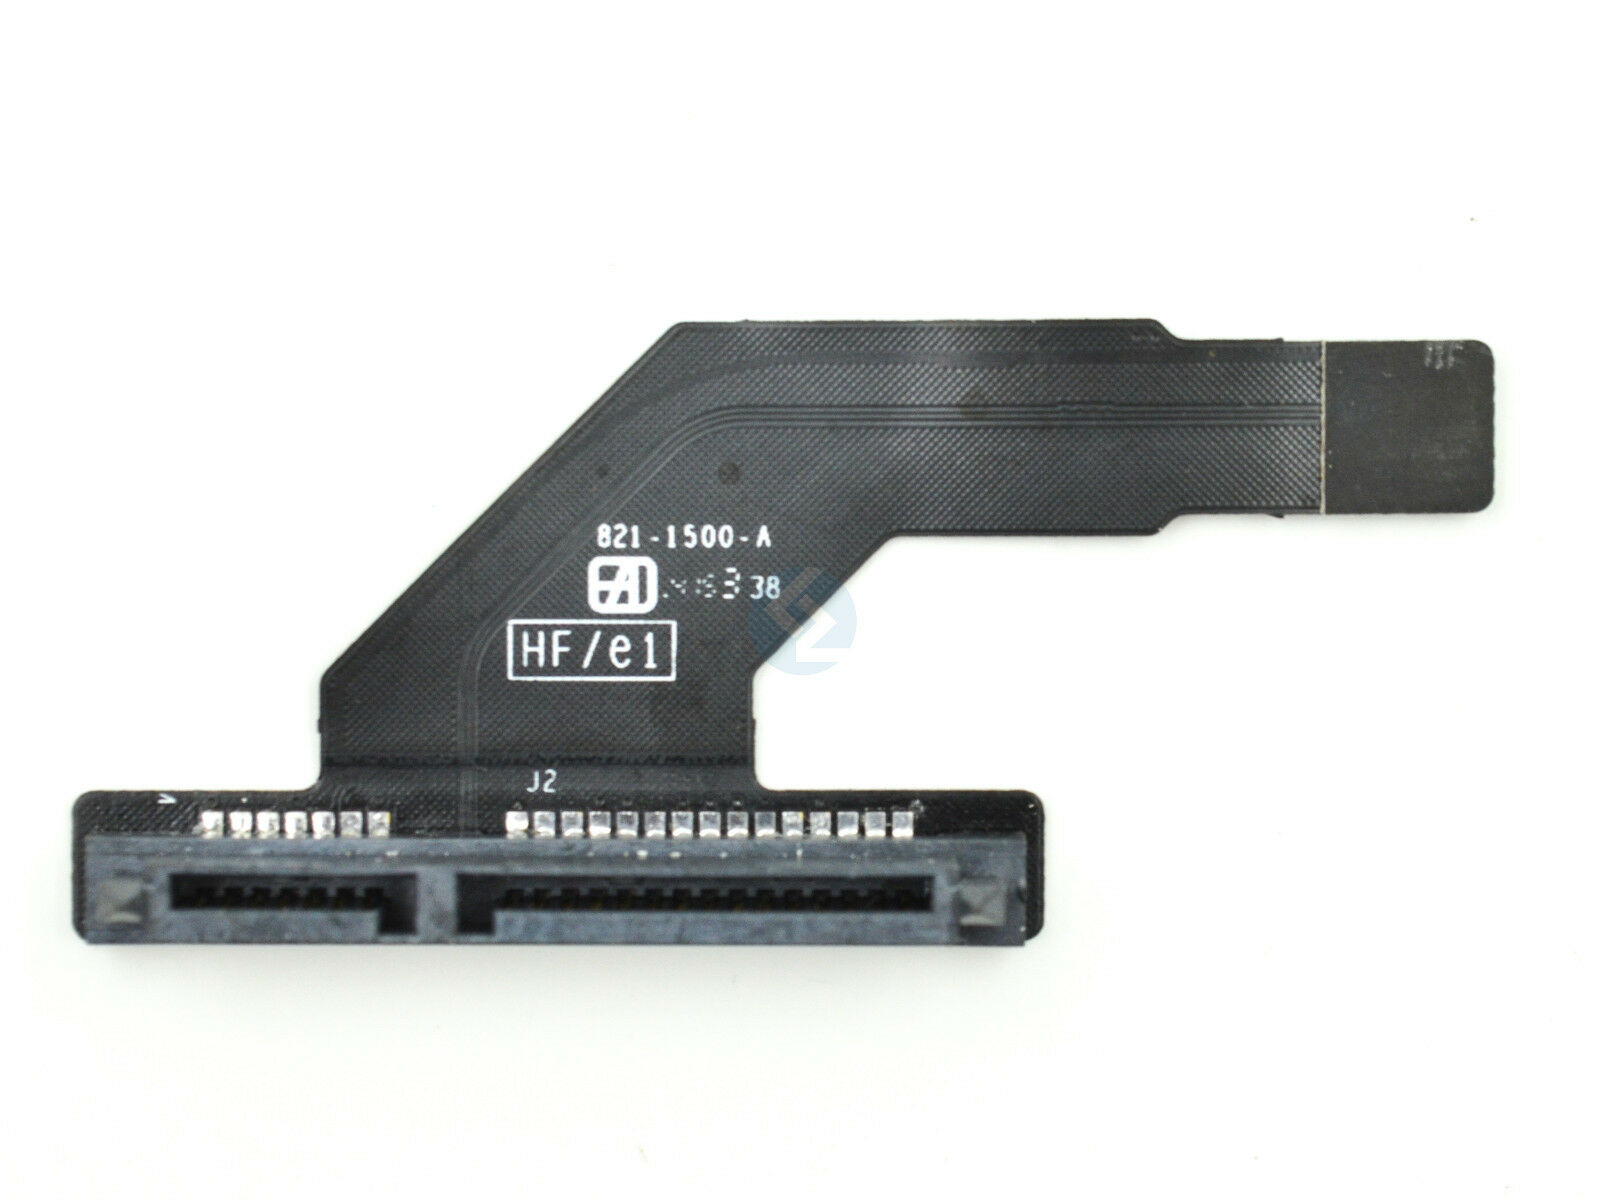 Hard Drive SSD Cable Kit 821-1500-A  for Mac Mini A1347 Server Fast USA shipping